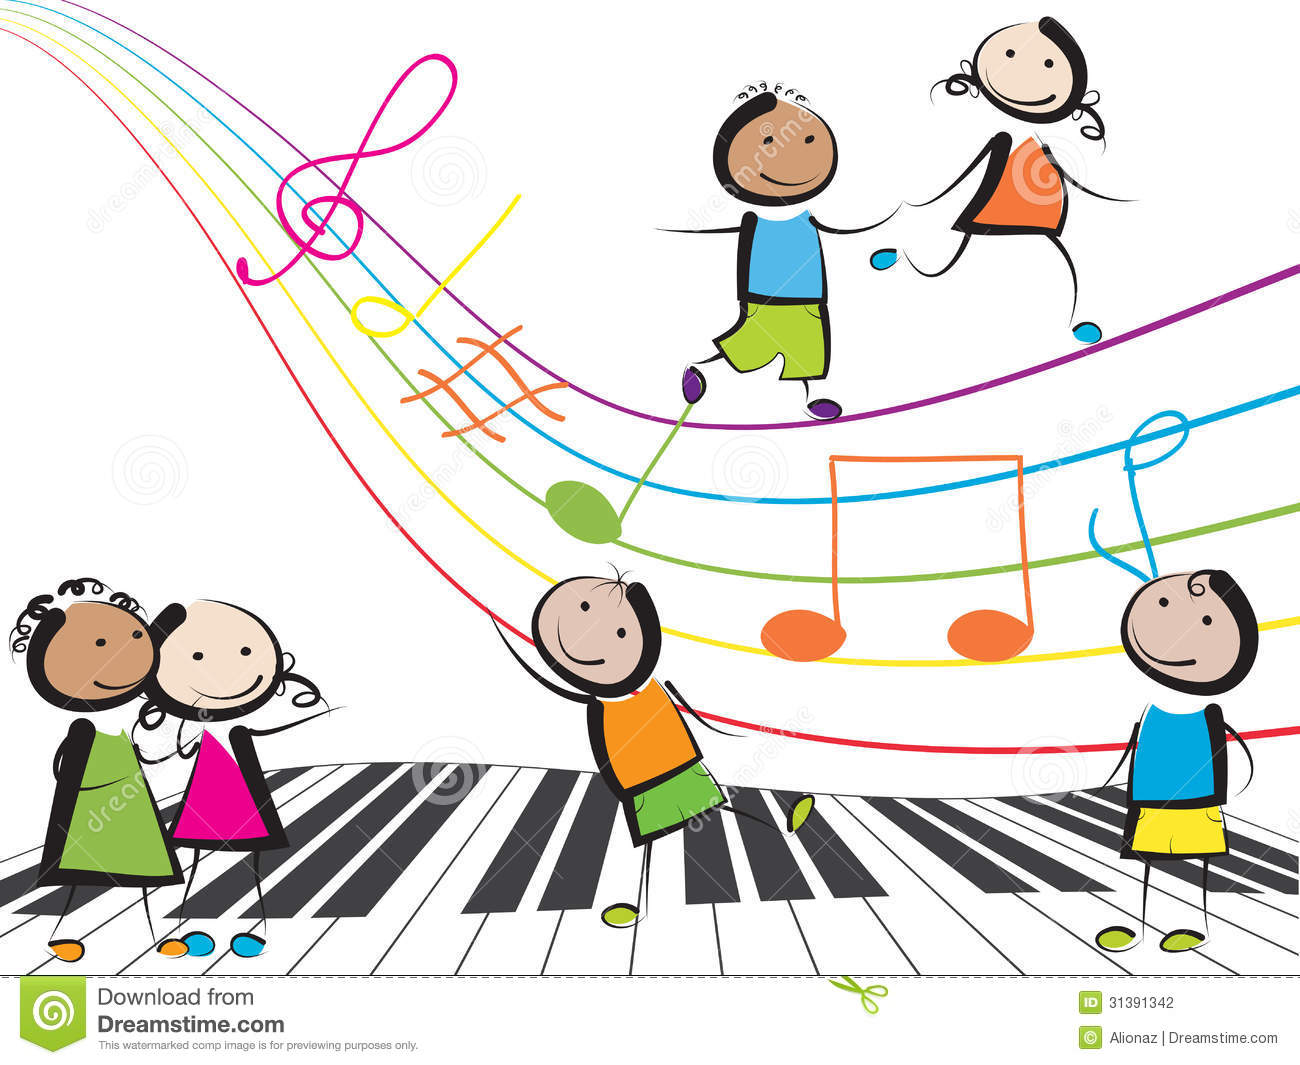 music children clipart background playing clip happy backgrounds musik kinder jumping silhouettes powerpoint child clipground hands around dreamstime